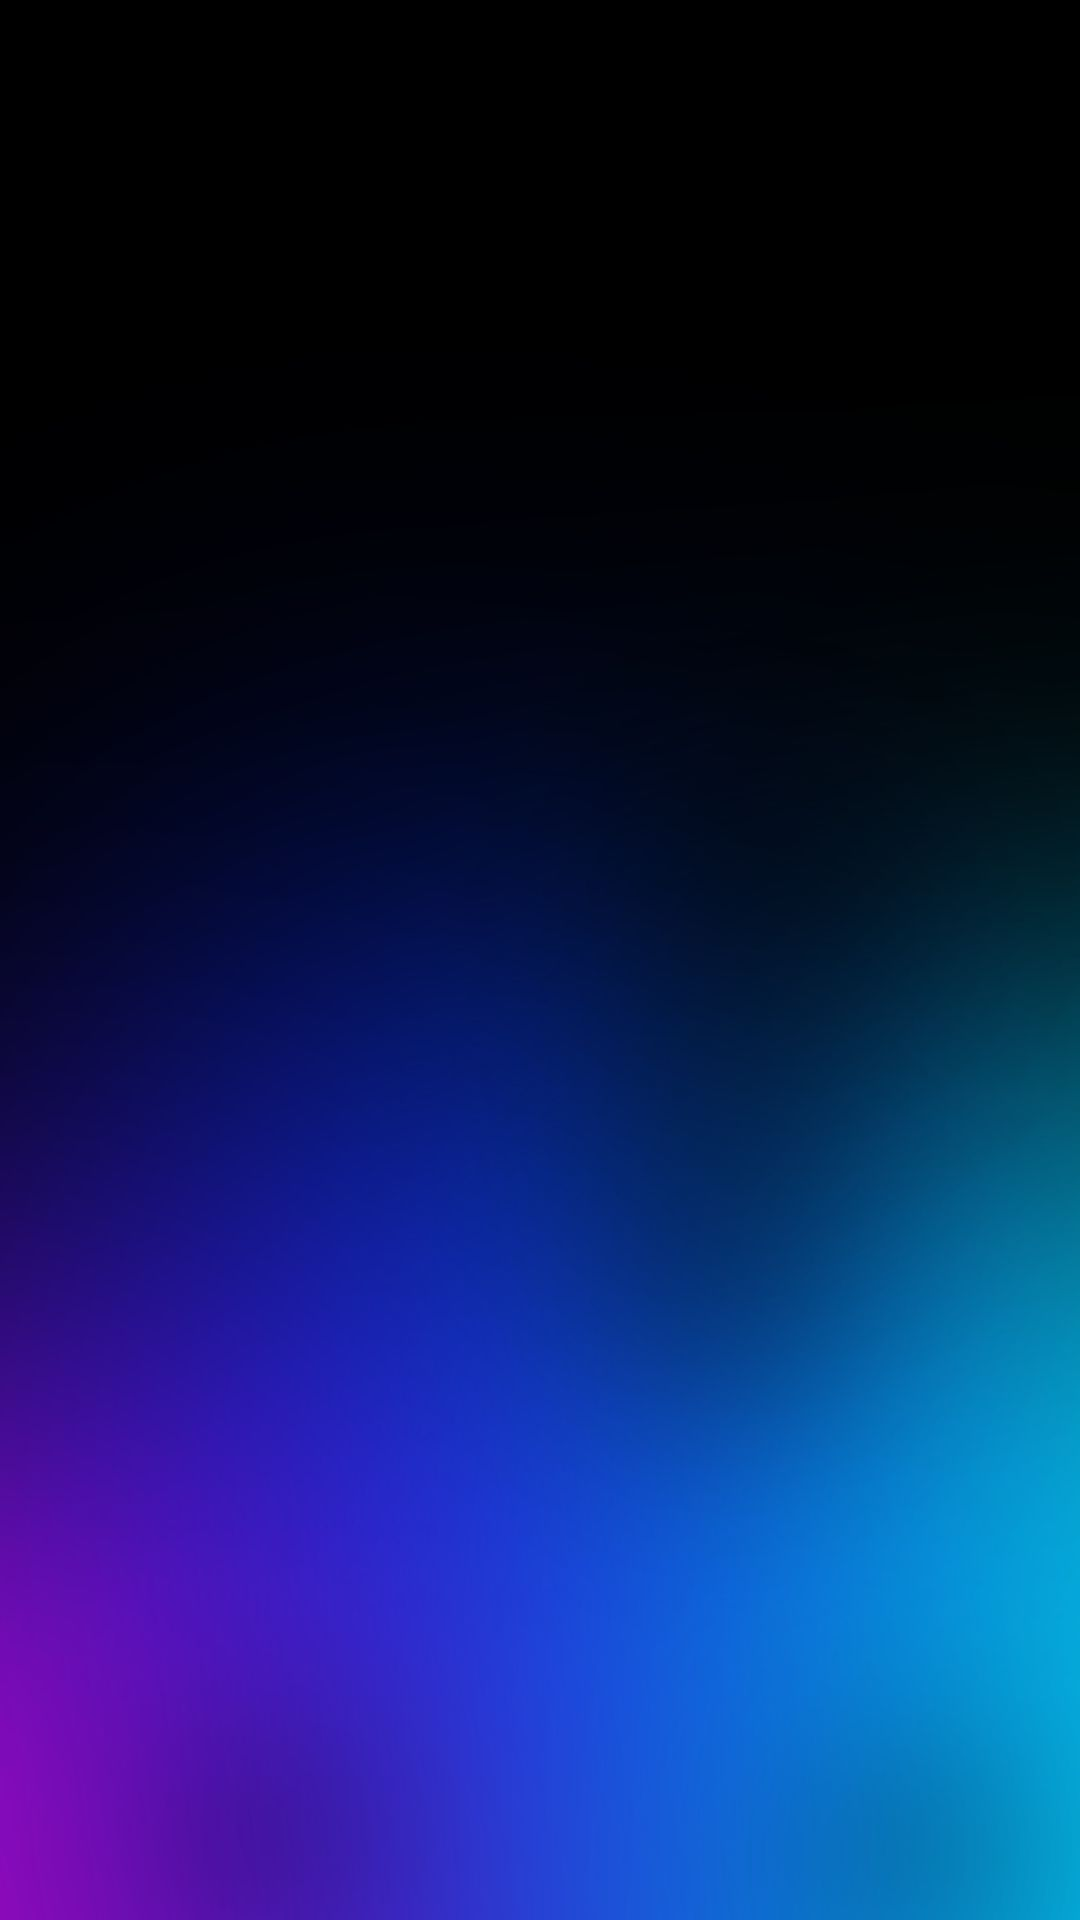 Dark Blue Gradient Iphone Wallpaper Blue Wallpaper Iphone Dark Blue Wallpaper Blue Wallpaper Phone